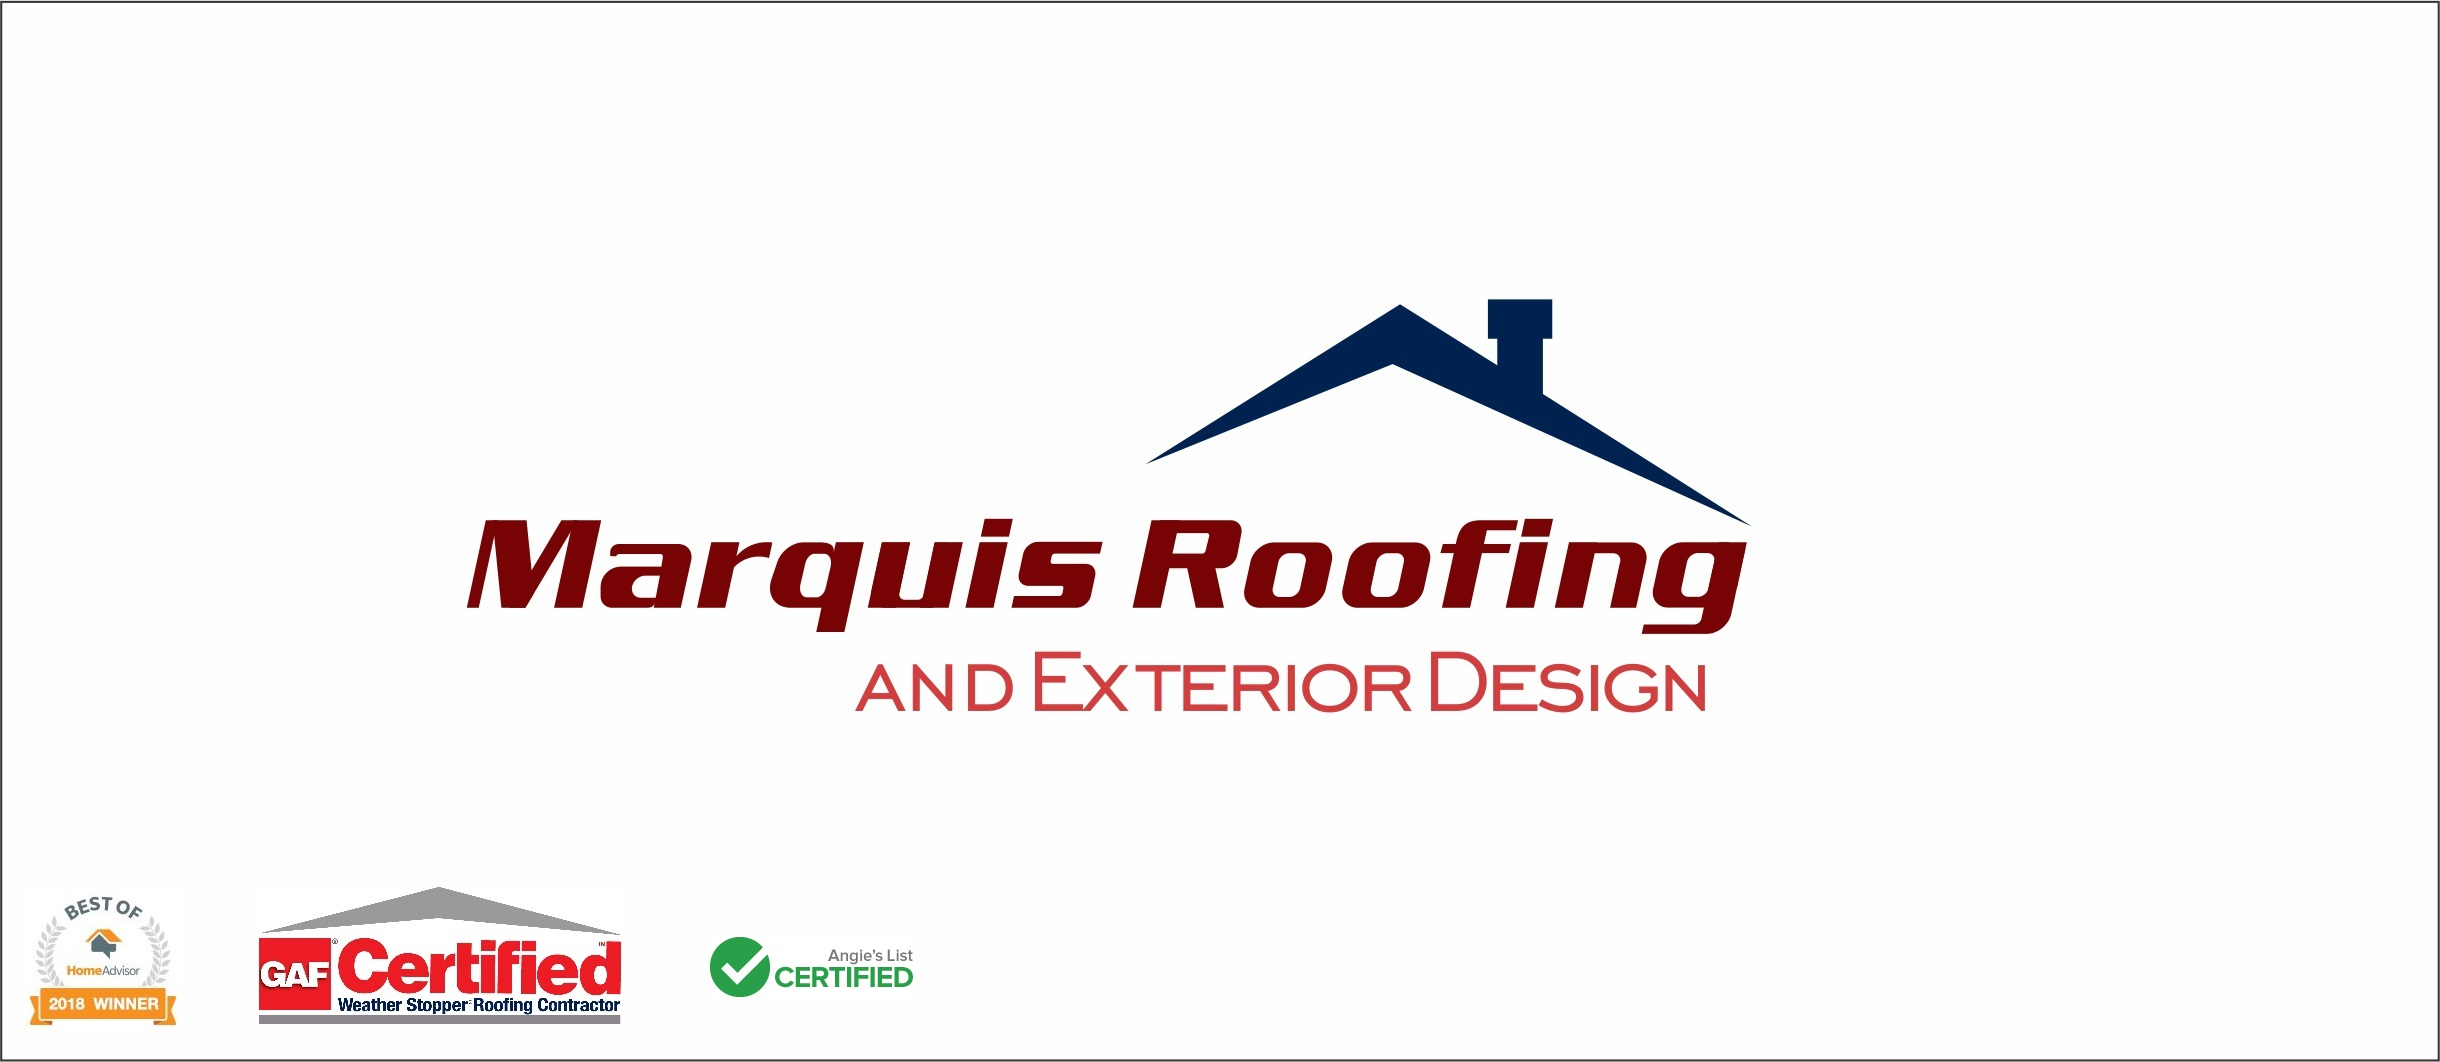 marquis roofing and exterior design reviews | Roofing at 71 Auburn Street - Concord NH